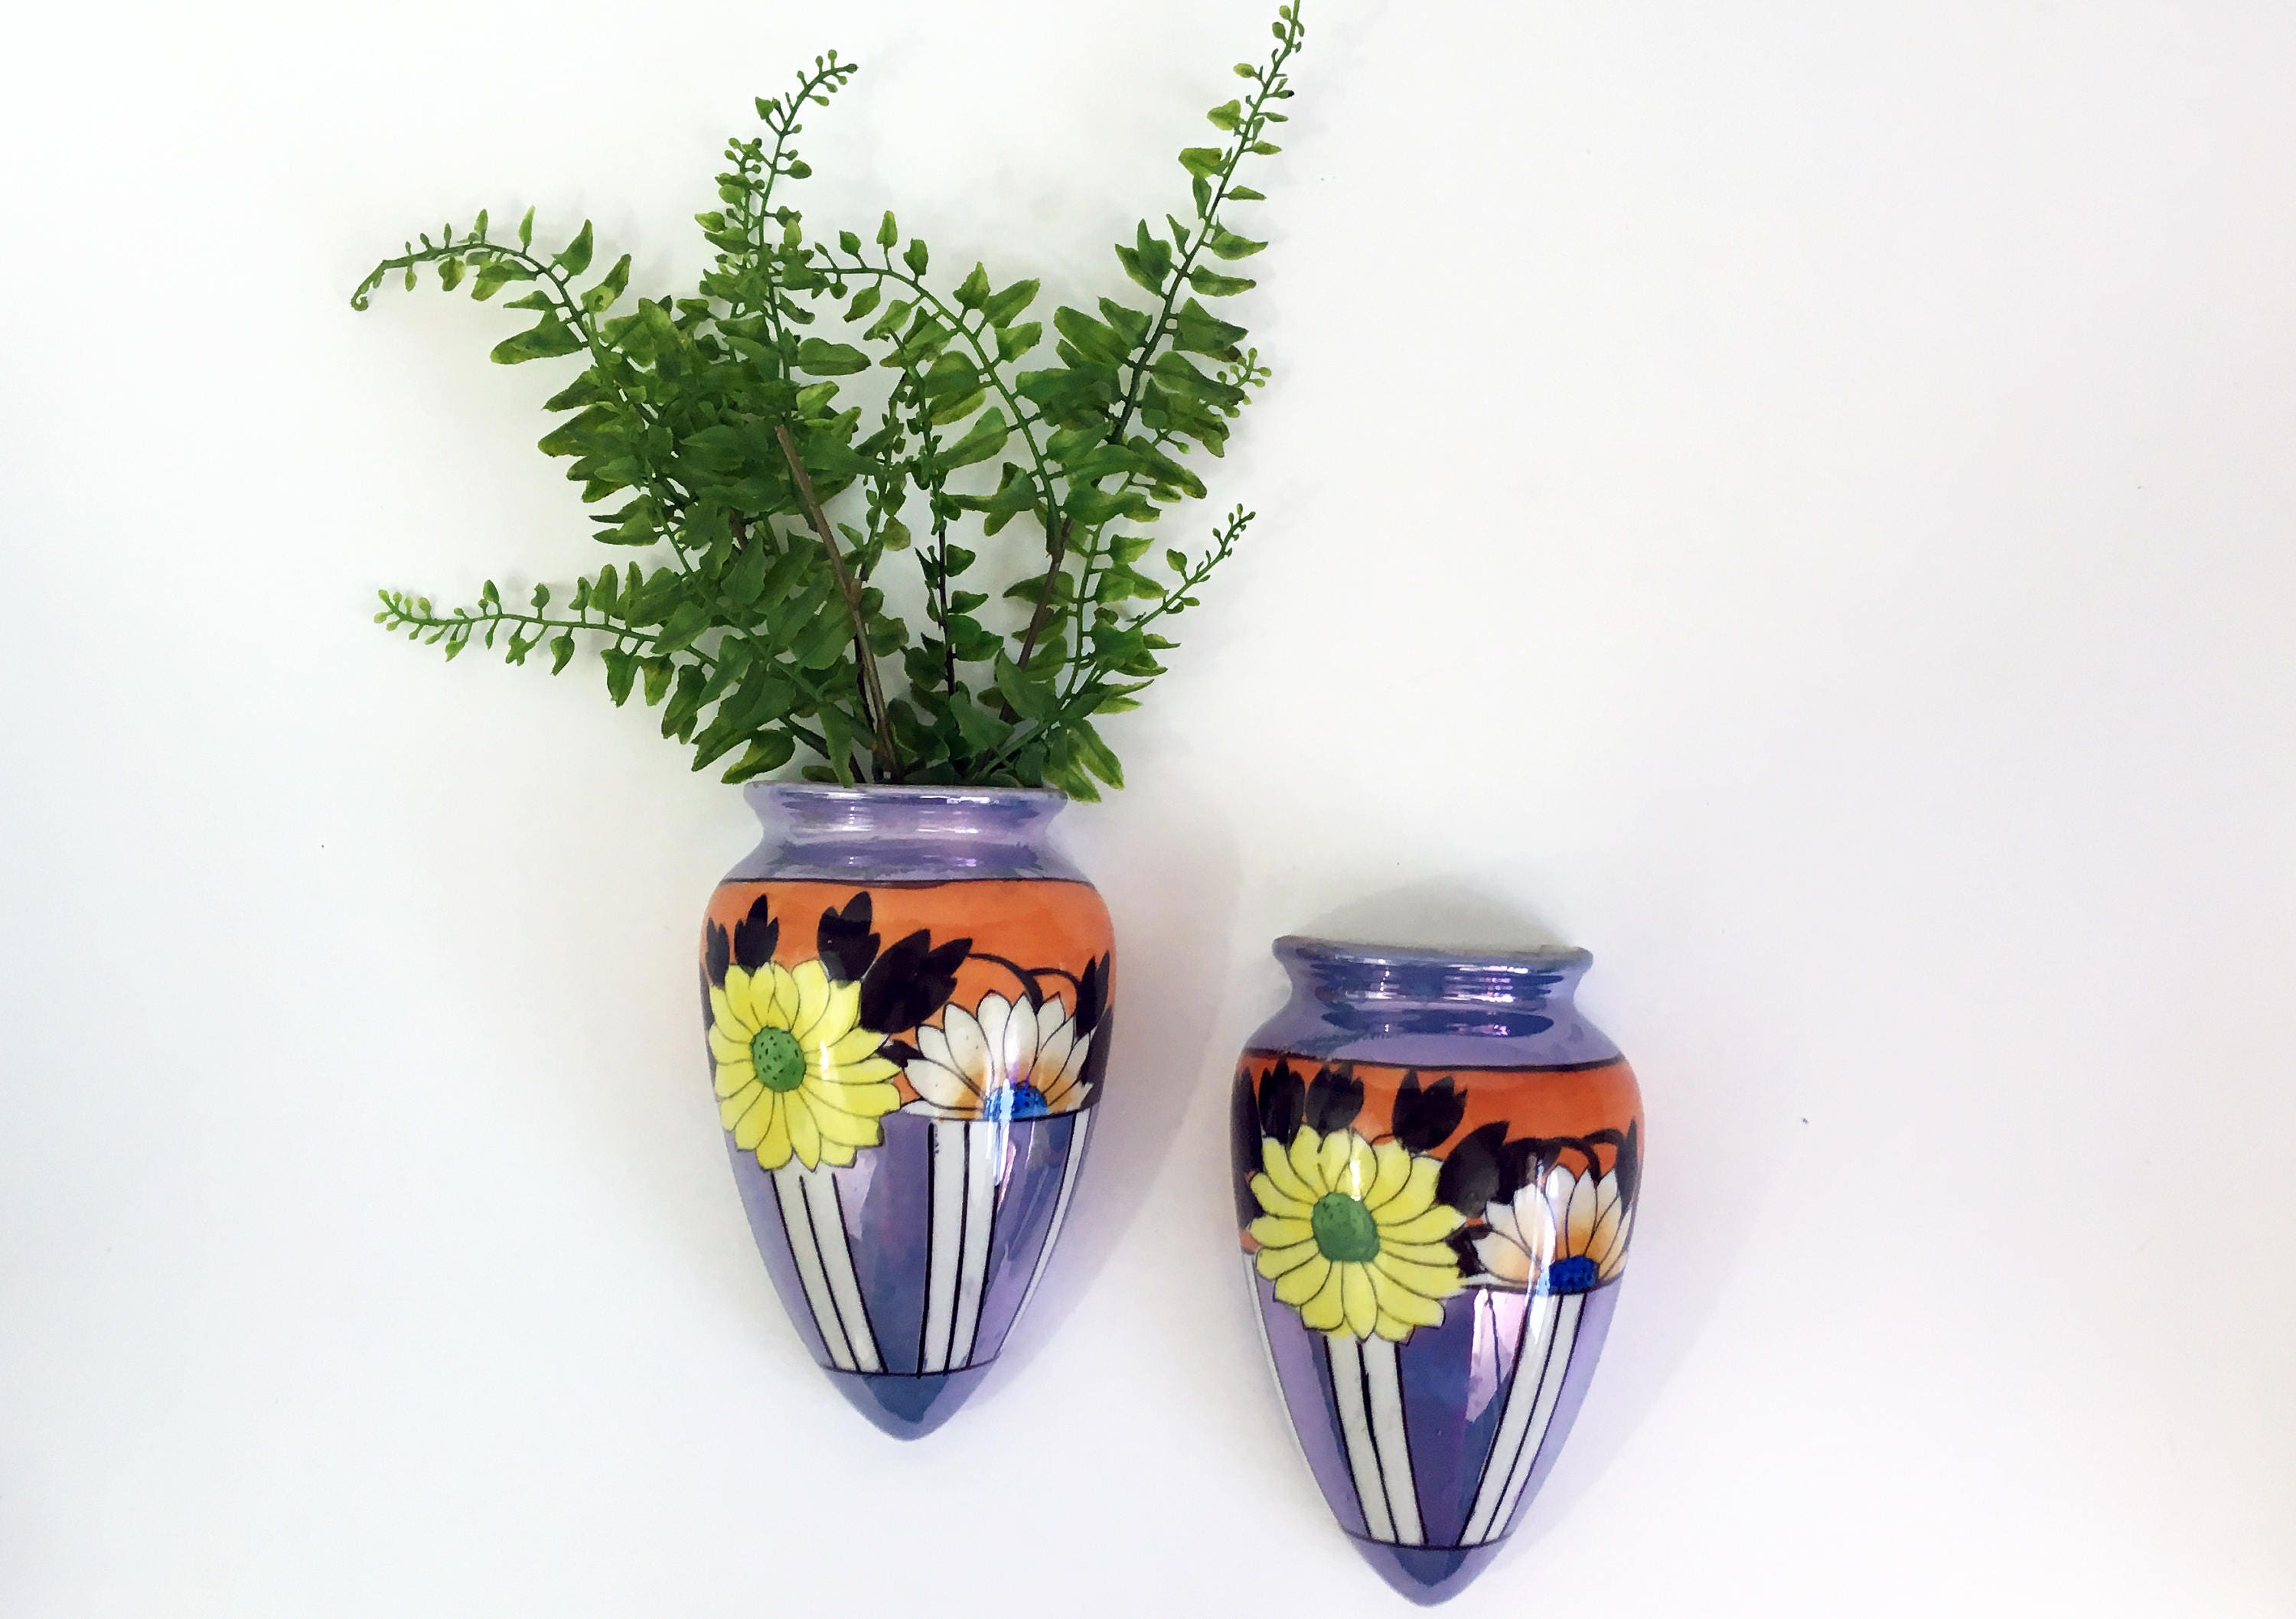 Vintage pair lusterware pocket vases 2 ceramic wall pocket vases vintage pair lusterware pocket vases 2 ceramic wall pocket vases hand painted japan wall vases floral mid century home decor reviewsmspy